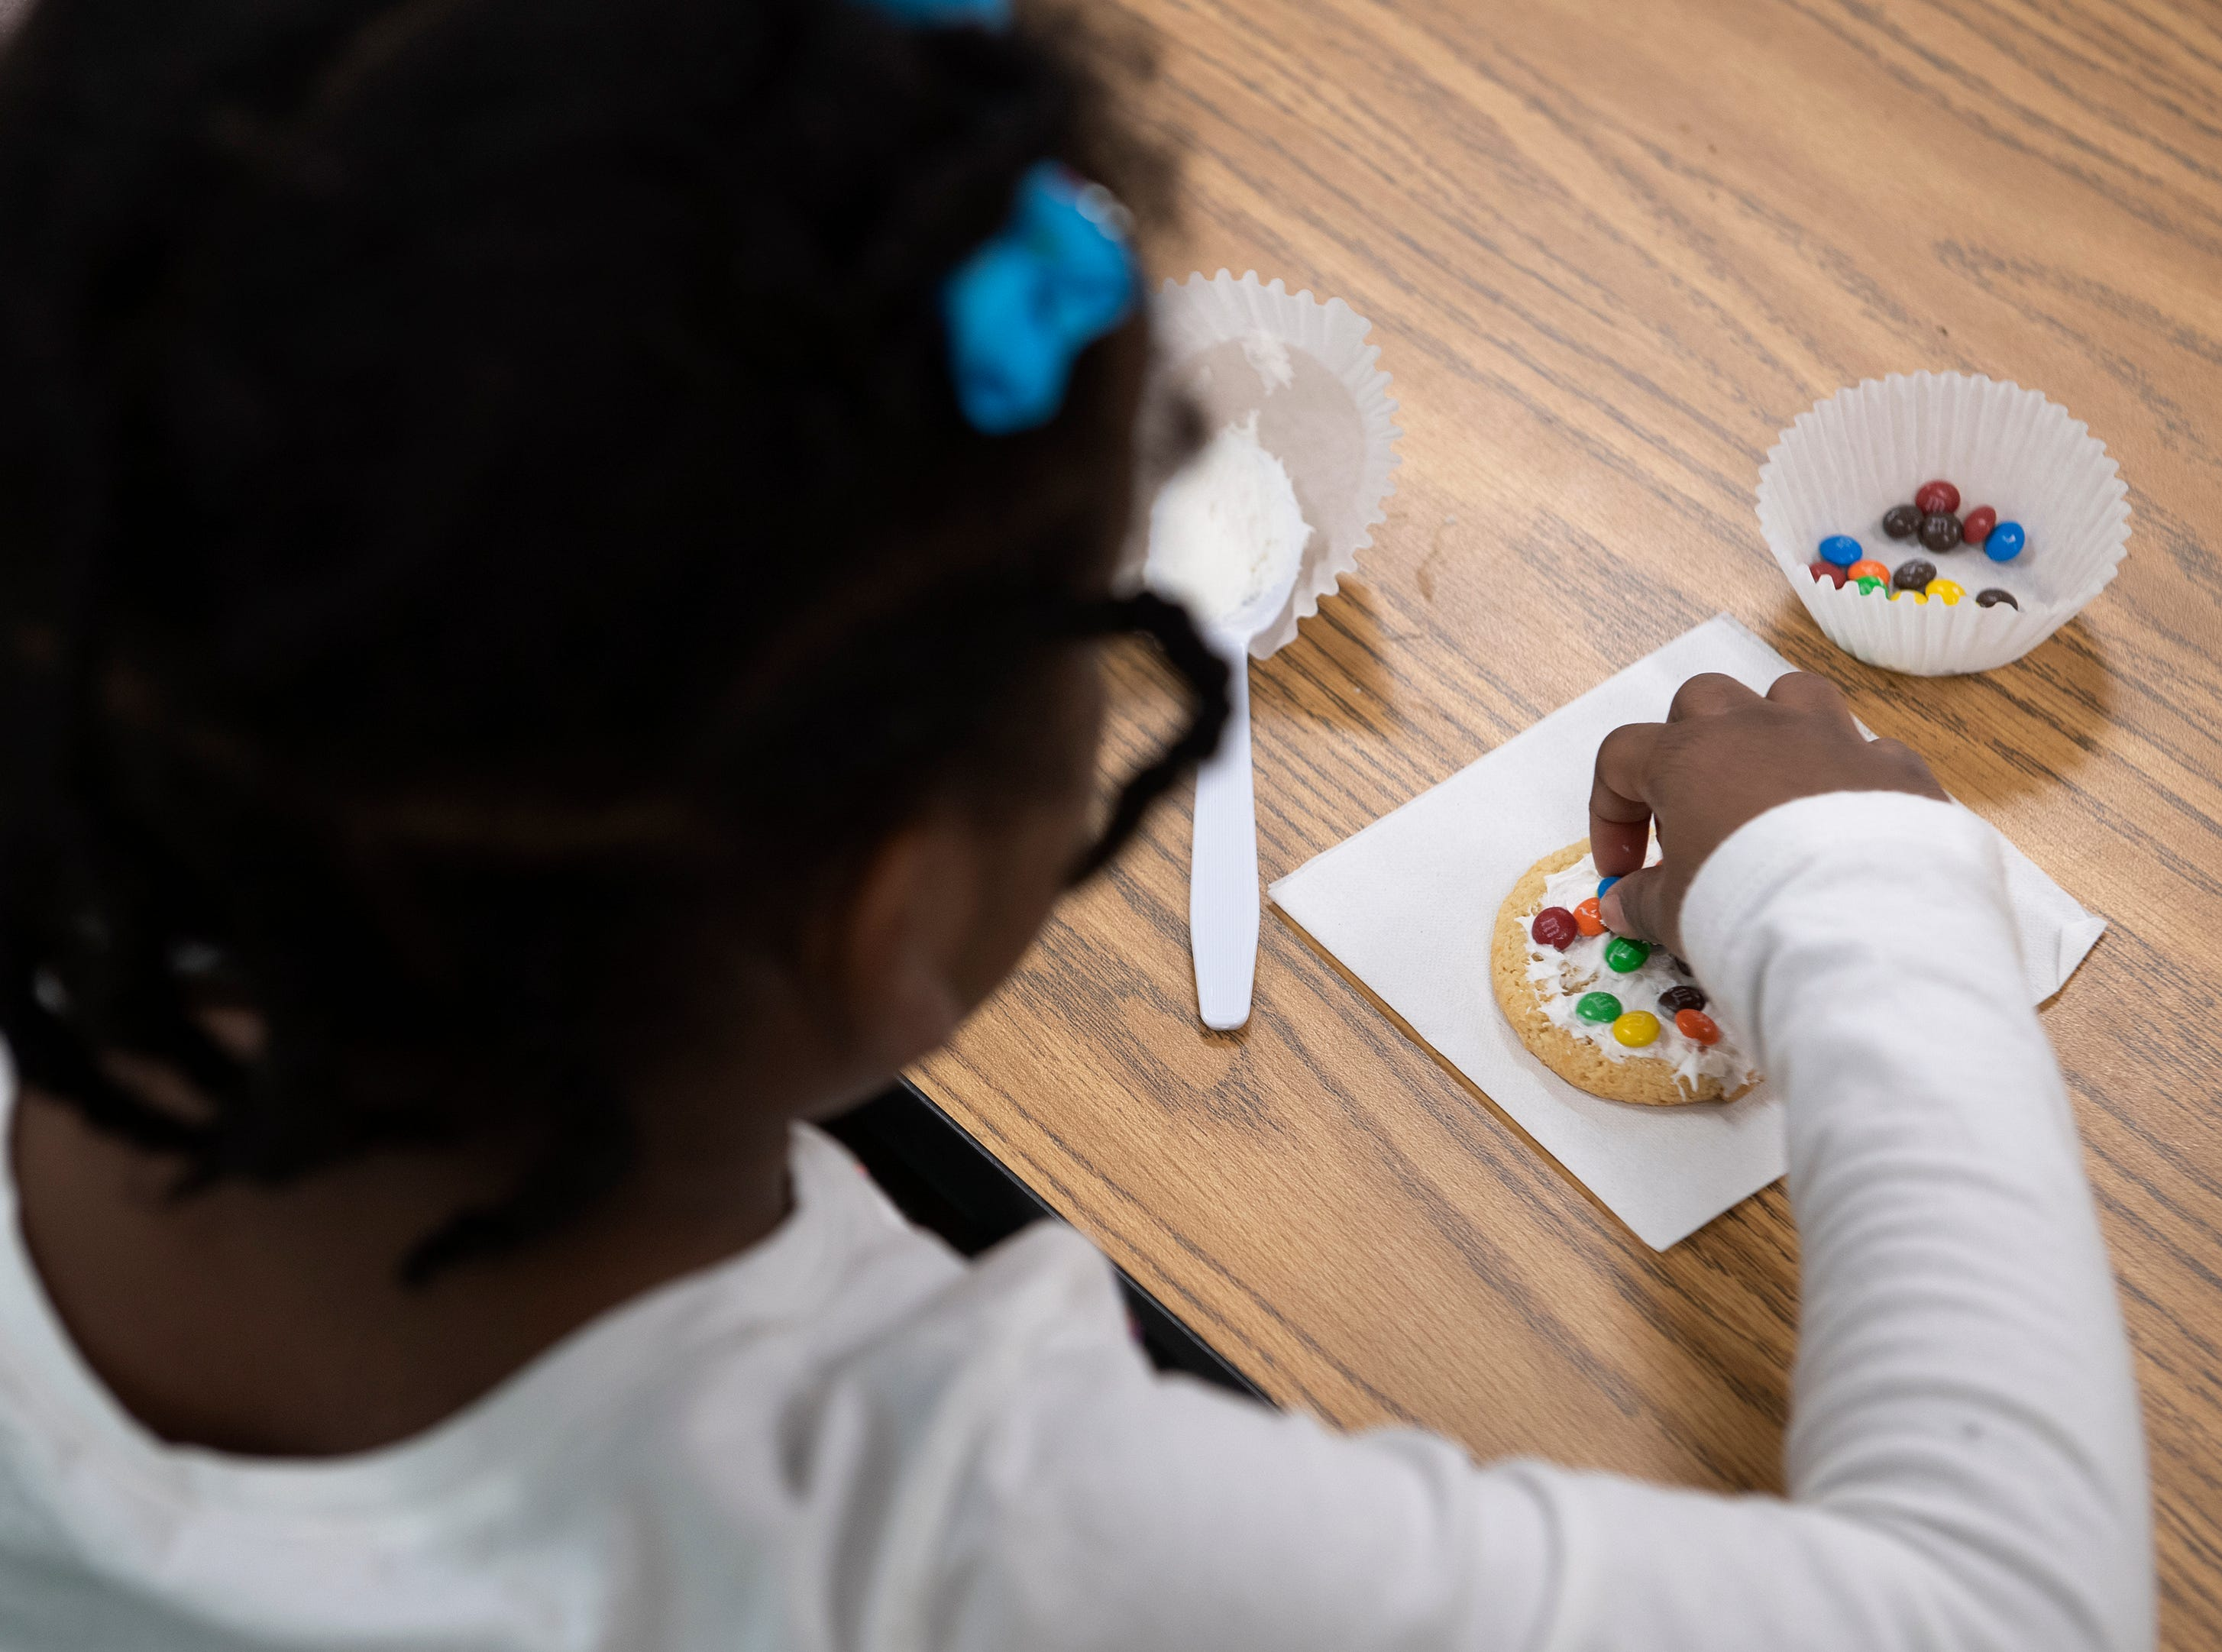 Chelsea Patterson, 4, decorates a cookie during an activity with Michelin volunteers at East North Street Academy Tuesday, Jan. 15, 2019.